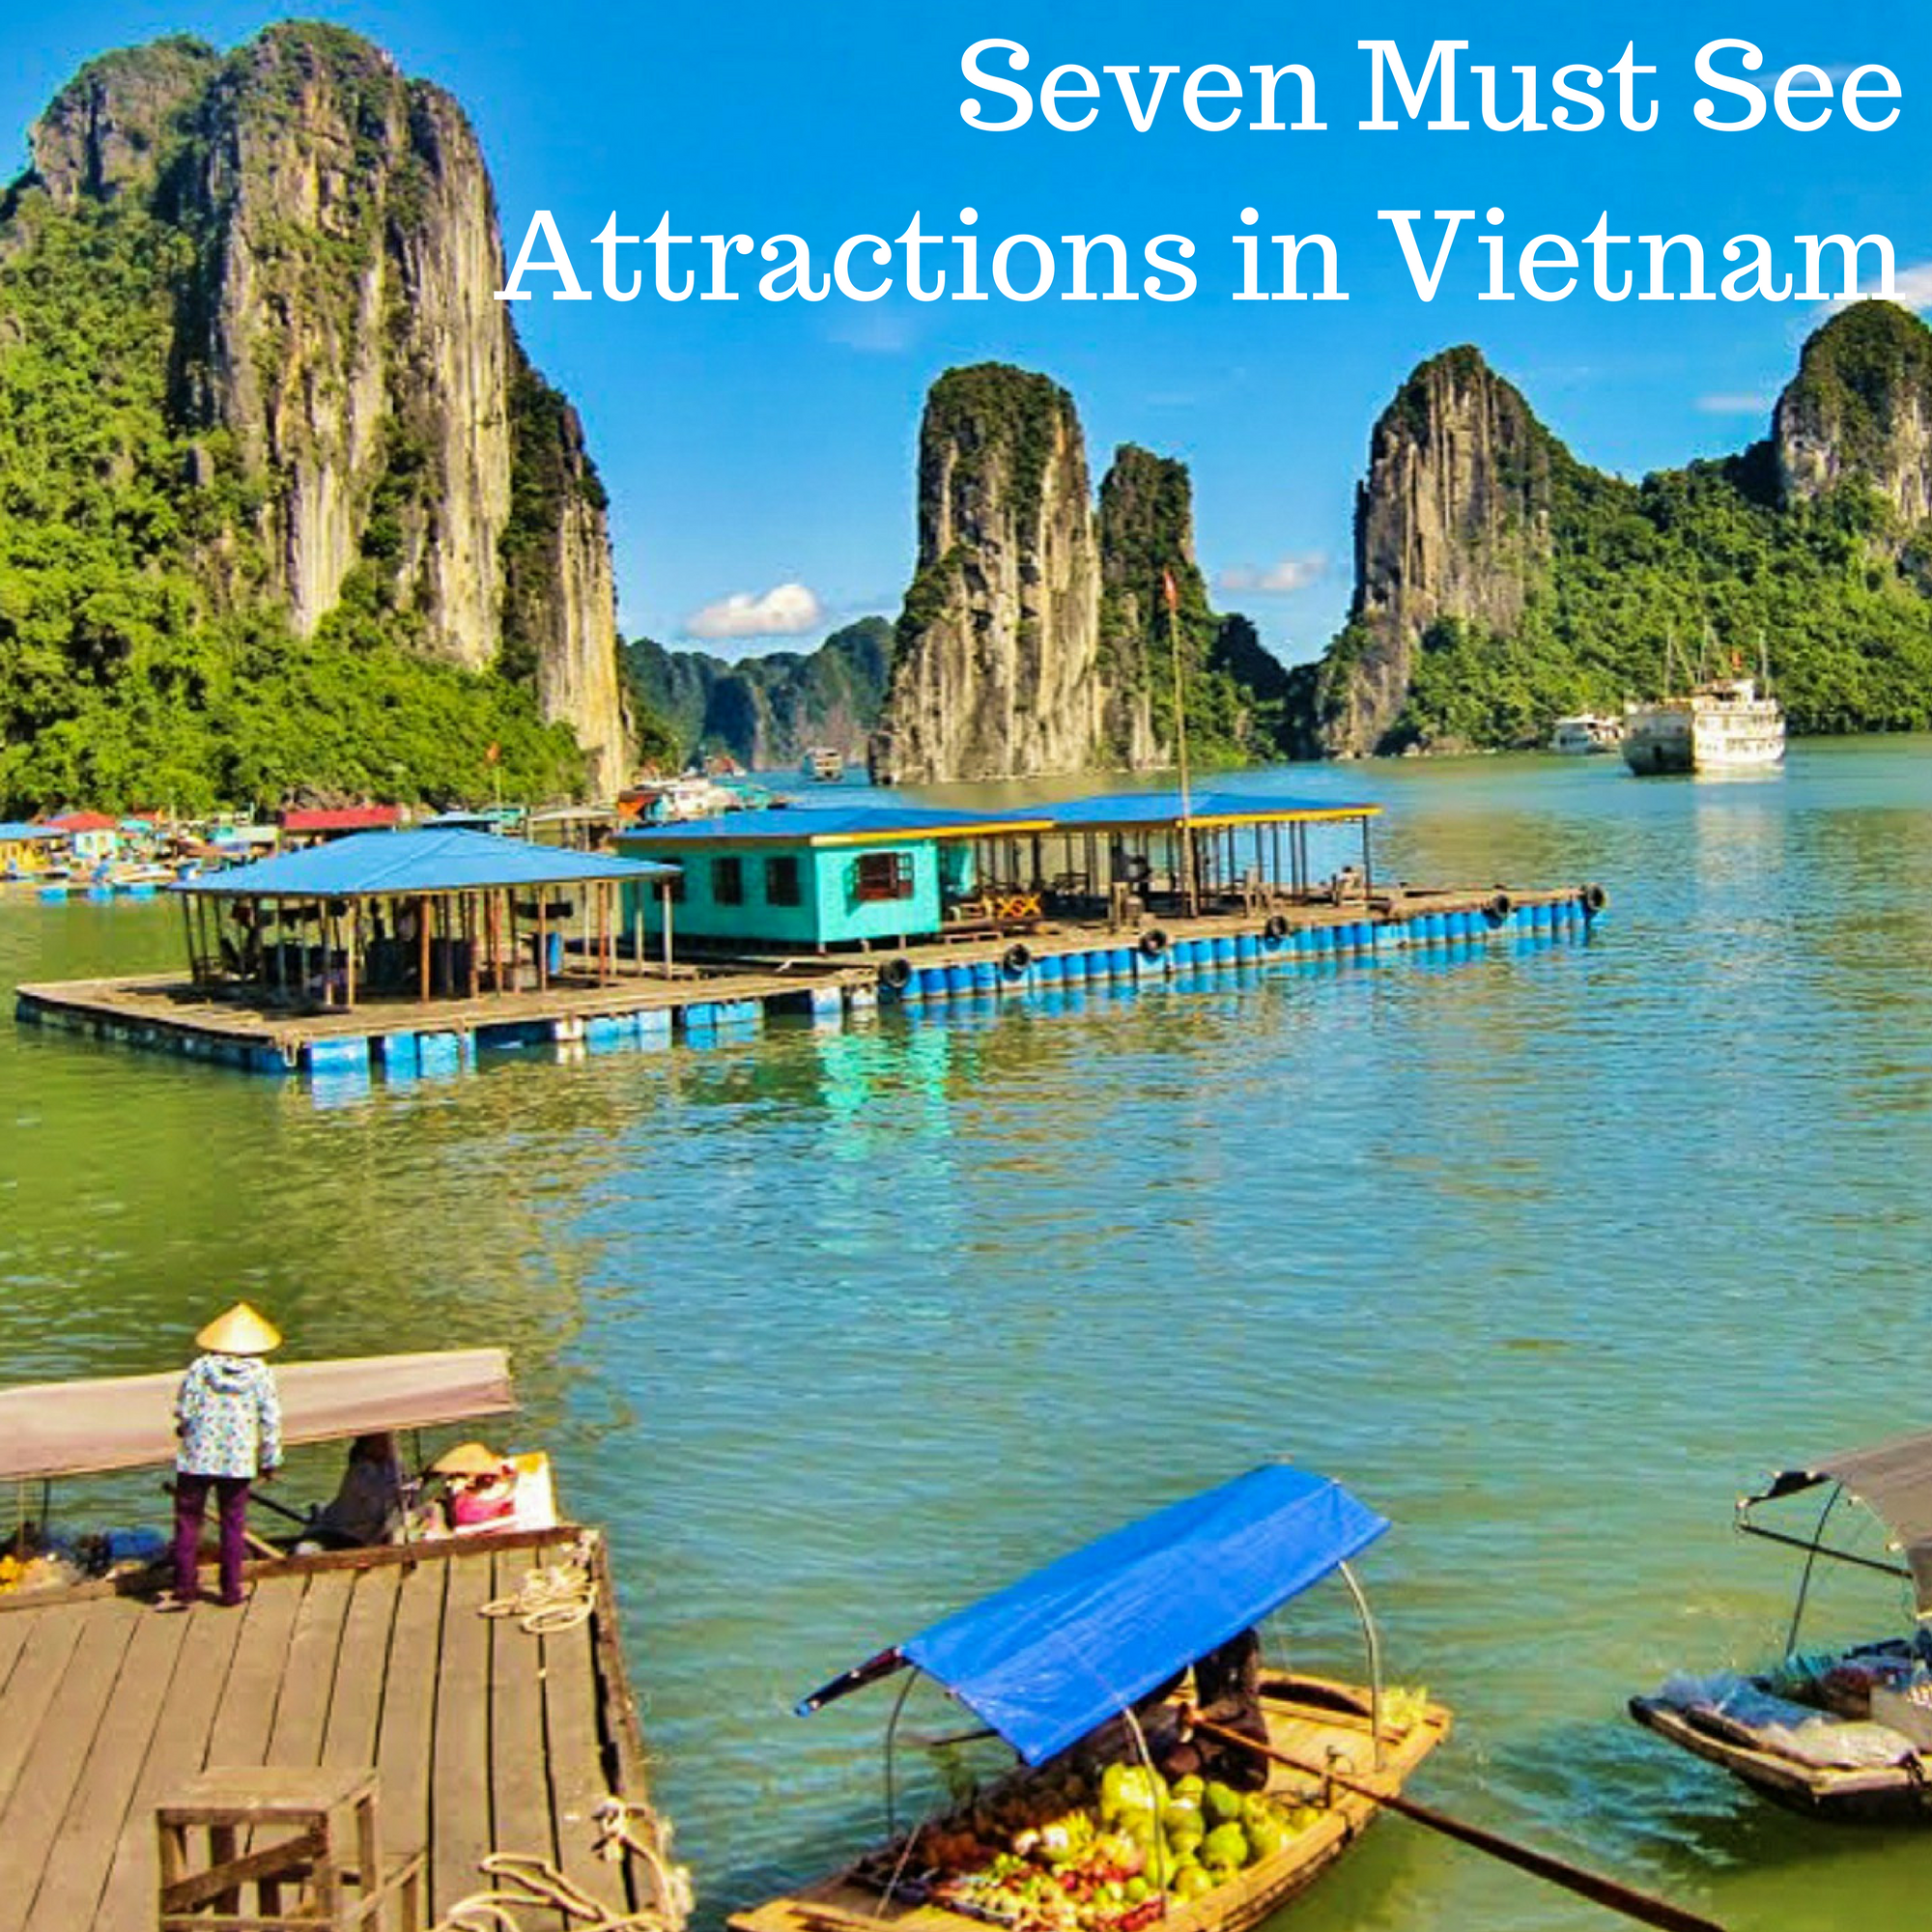 Seven Must See Attractions in Vietnam